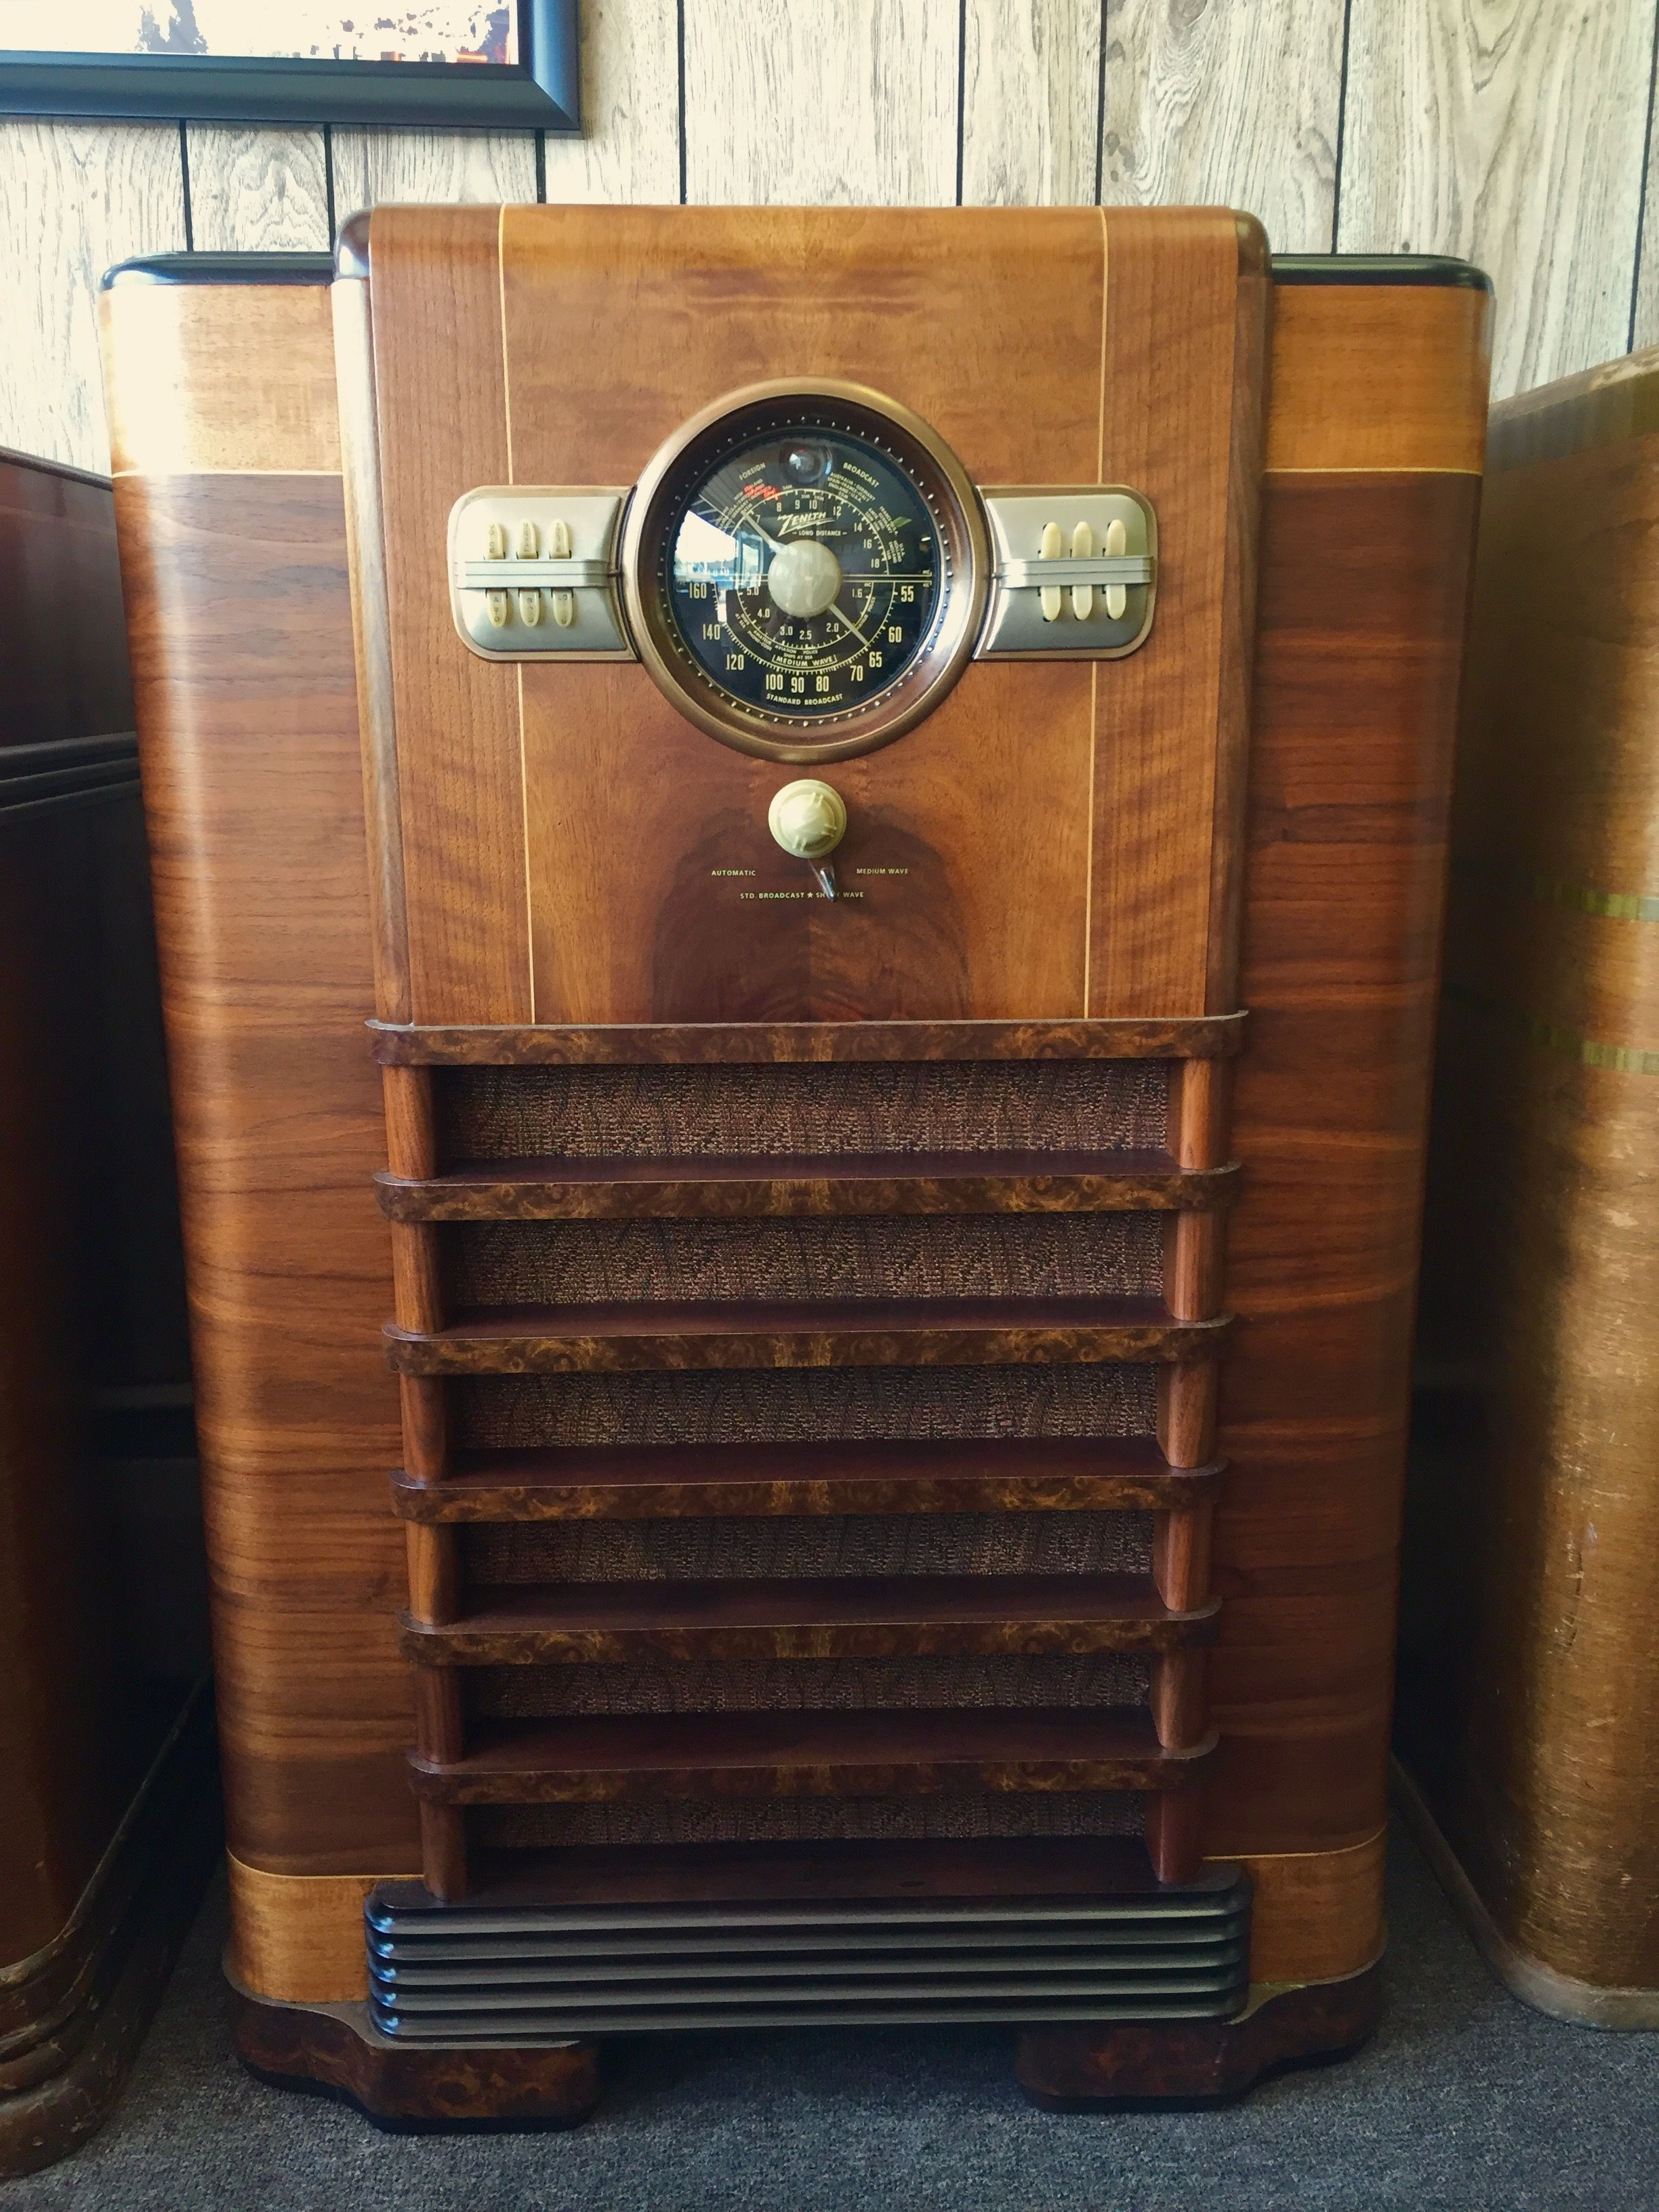 This Zenith 1940 Radio Has Had The Electronics Cabinet And Grill Cloth Restored And Is Ready For Purchase 2950 00 M Antique Radio Old Radios Vintage Radio